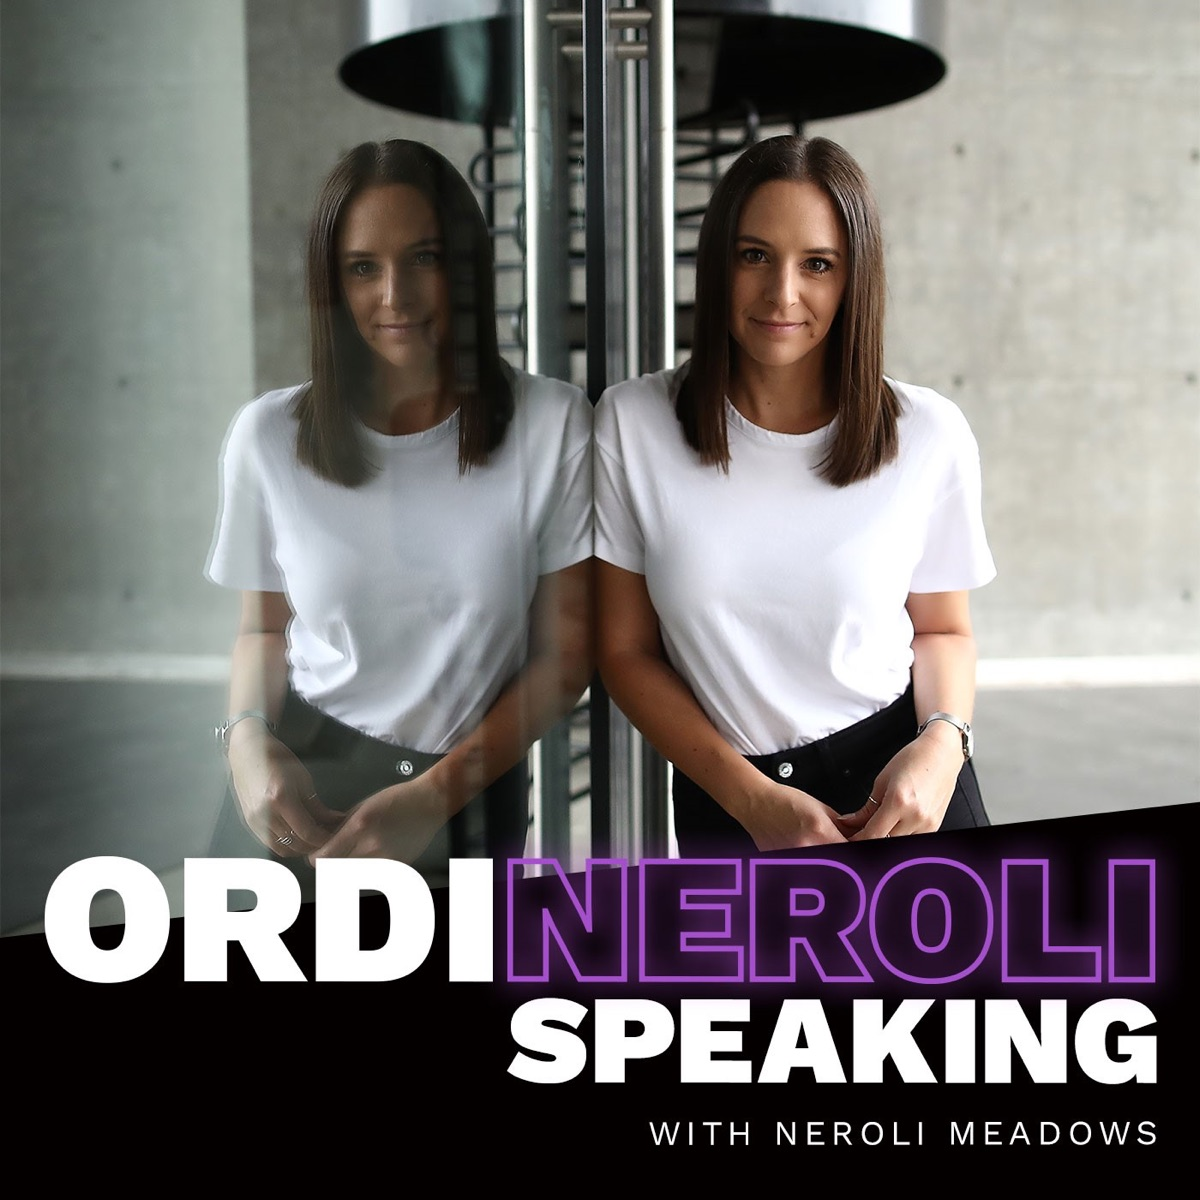 Introducing Ordineroli Speaking